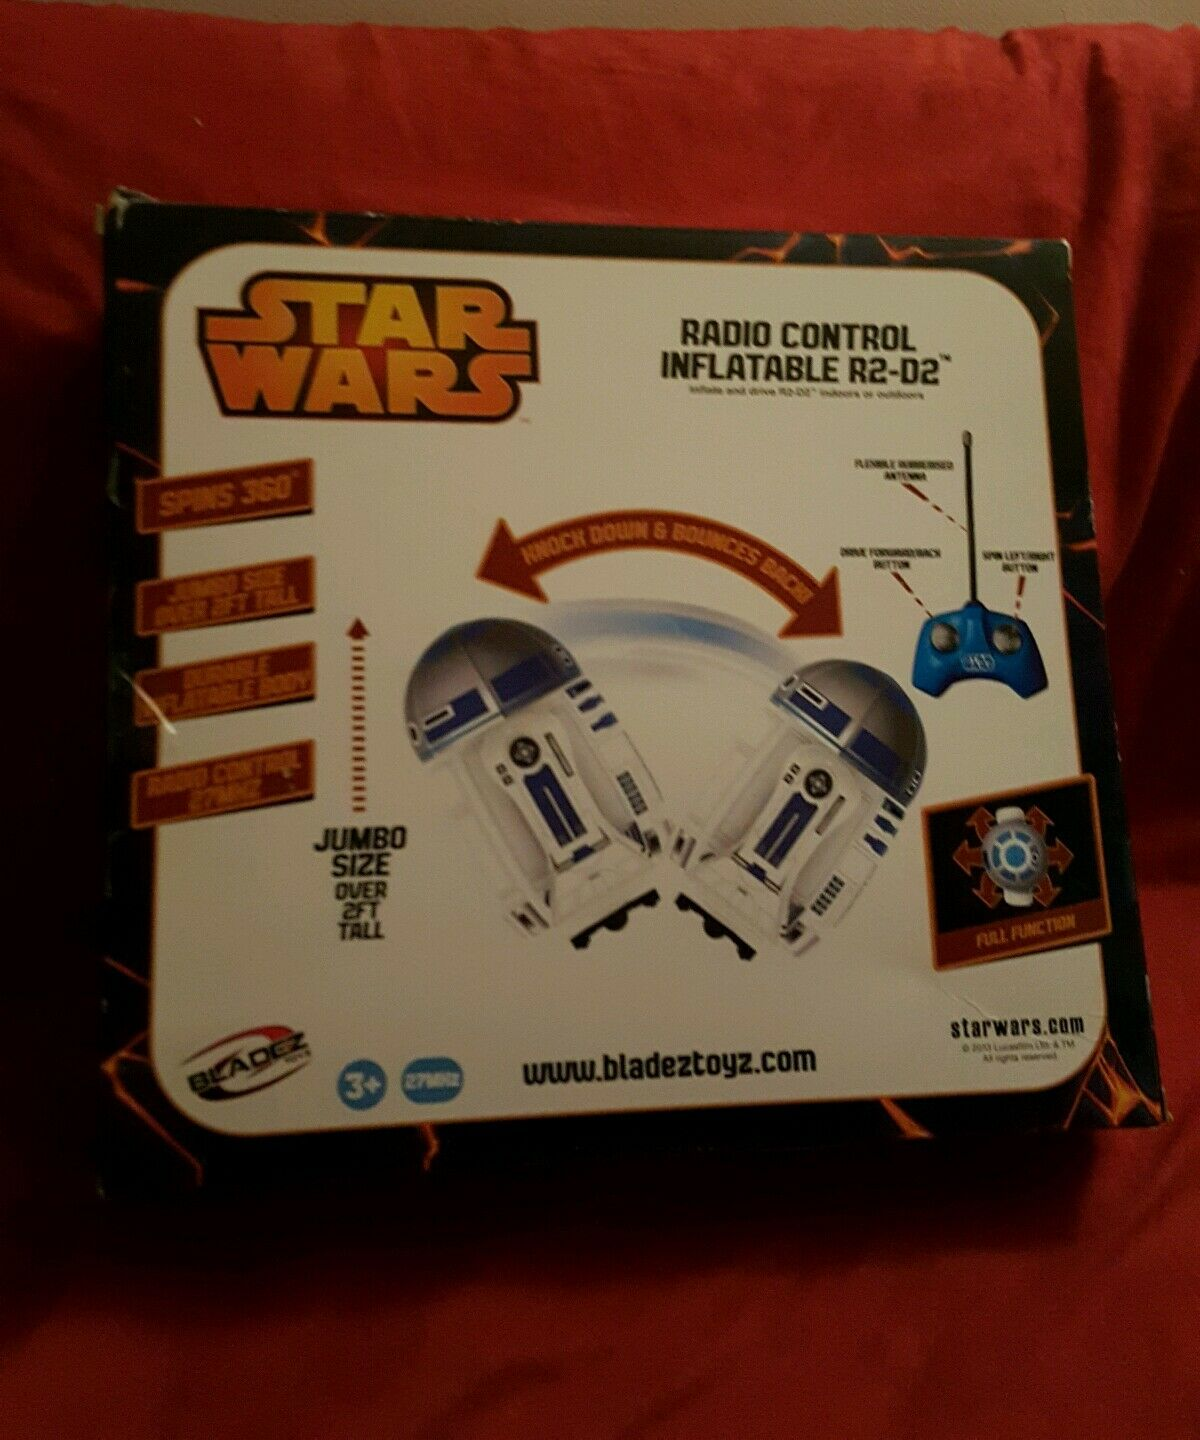 Star Wars R2-D2 Inflatable Droid R C Remote Control Controlled Controlled Controlled NIB International 18d95f